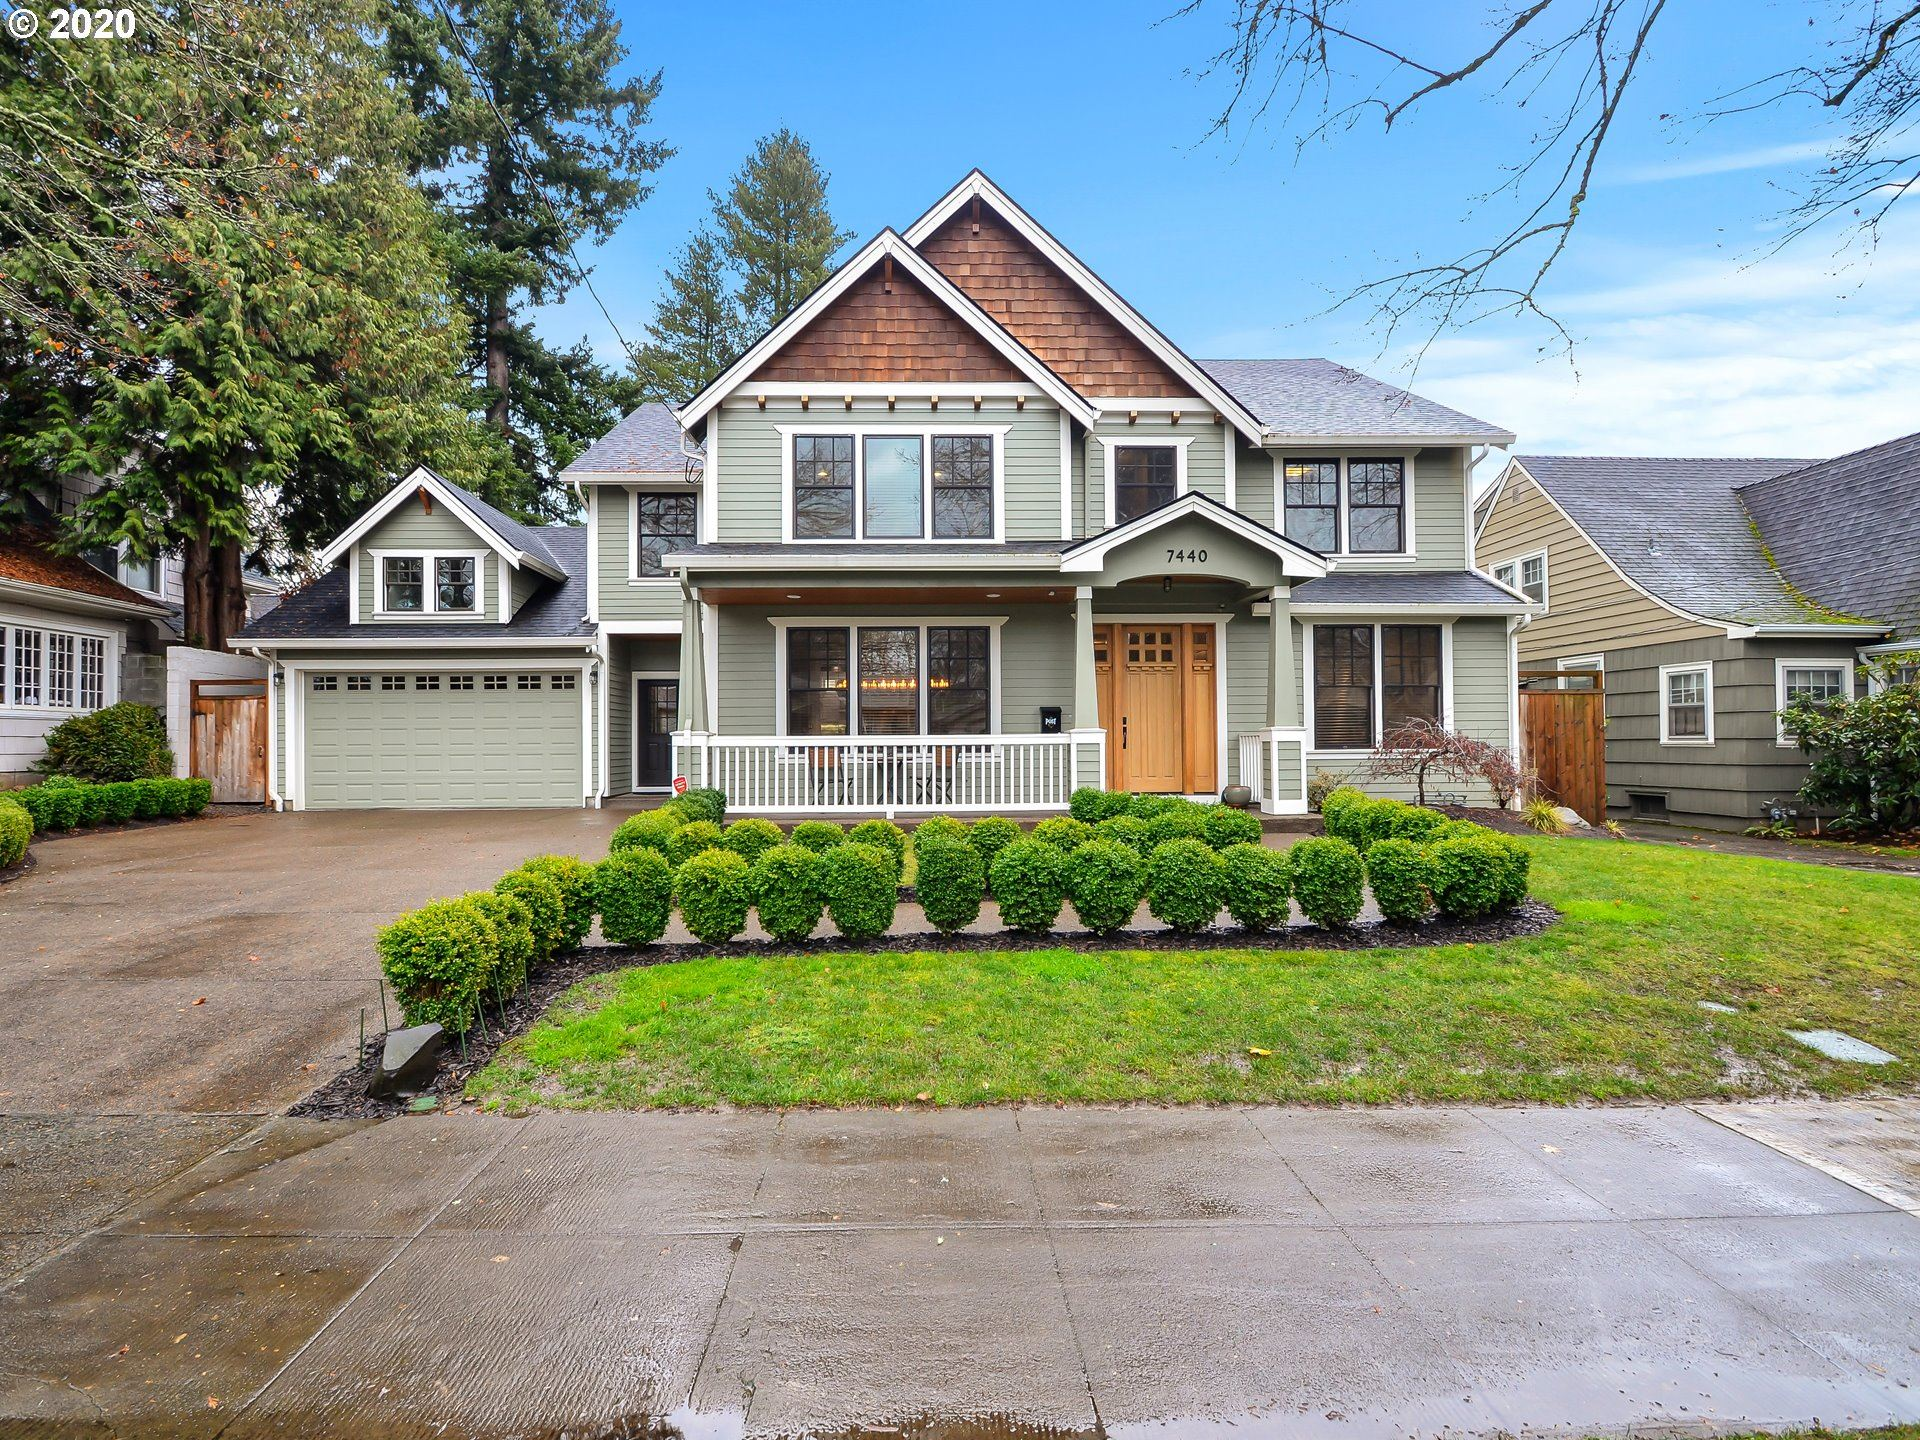 7440 SE 34TH AVE, Portland, OR 97202 - MLS#: 20371473